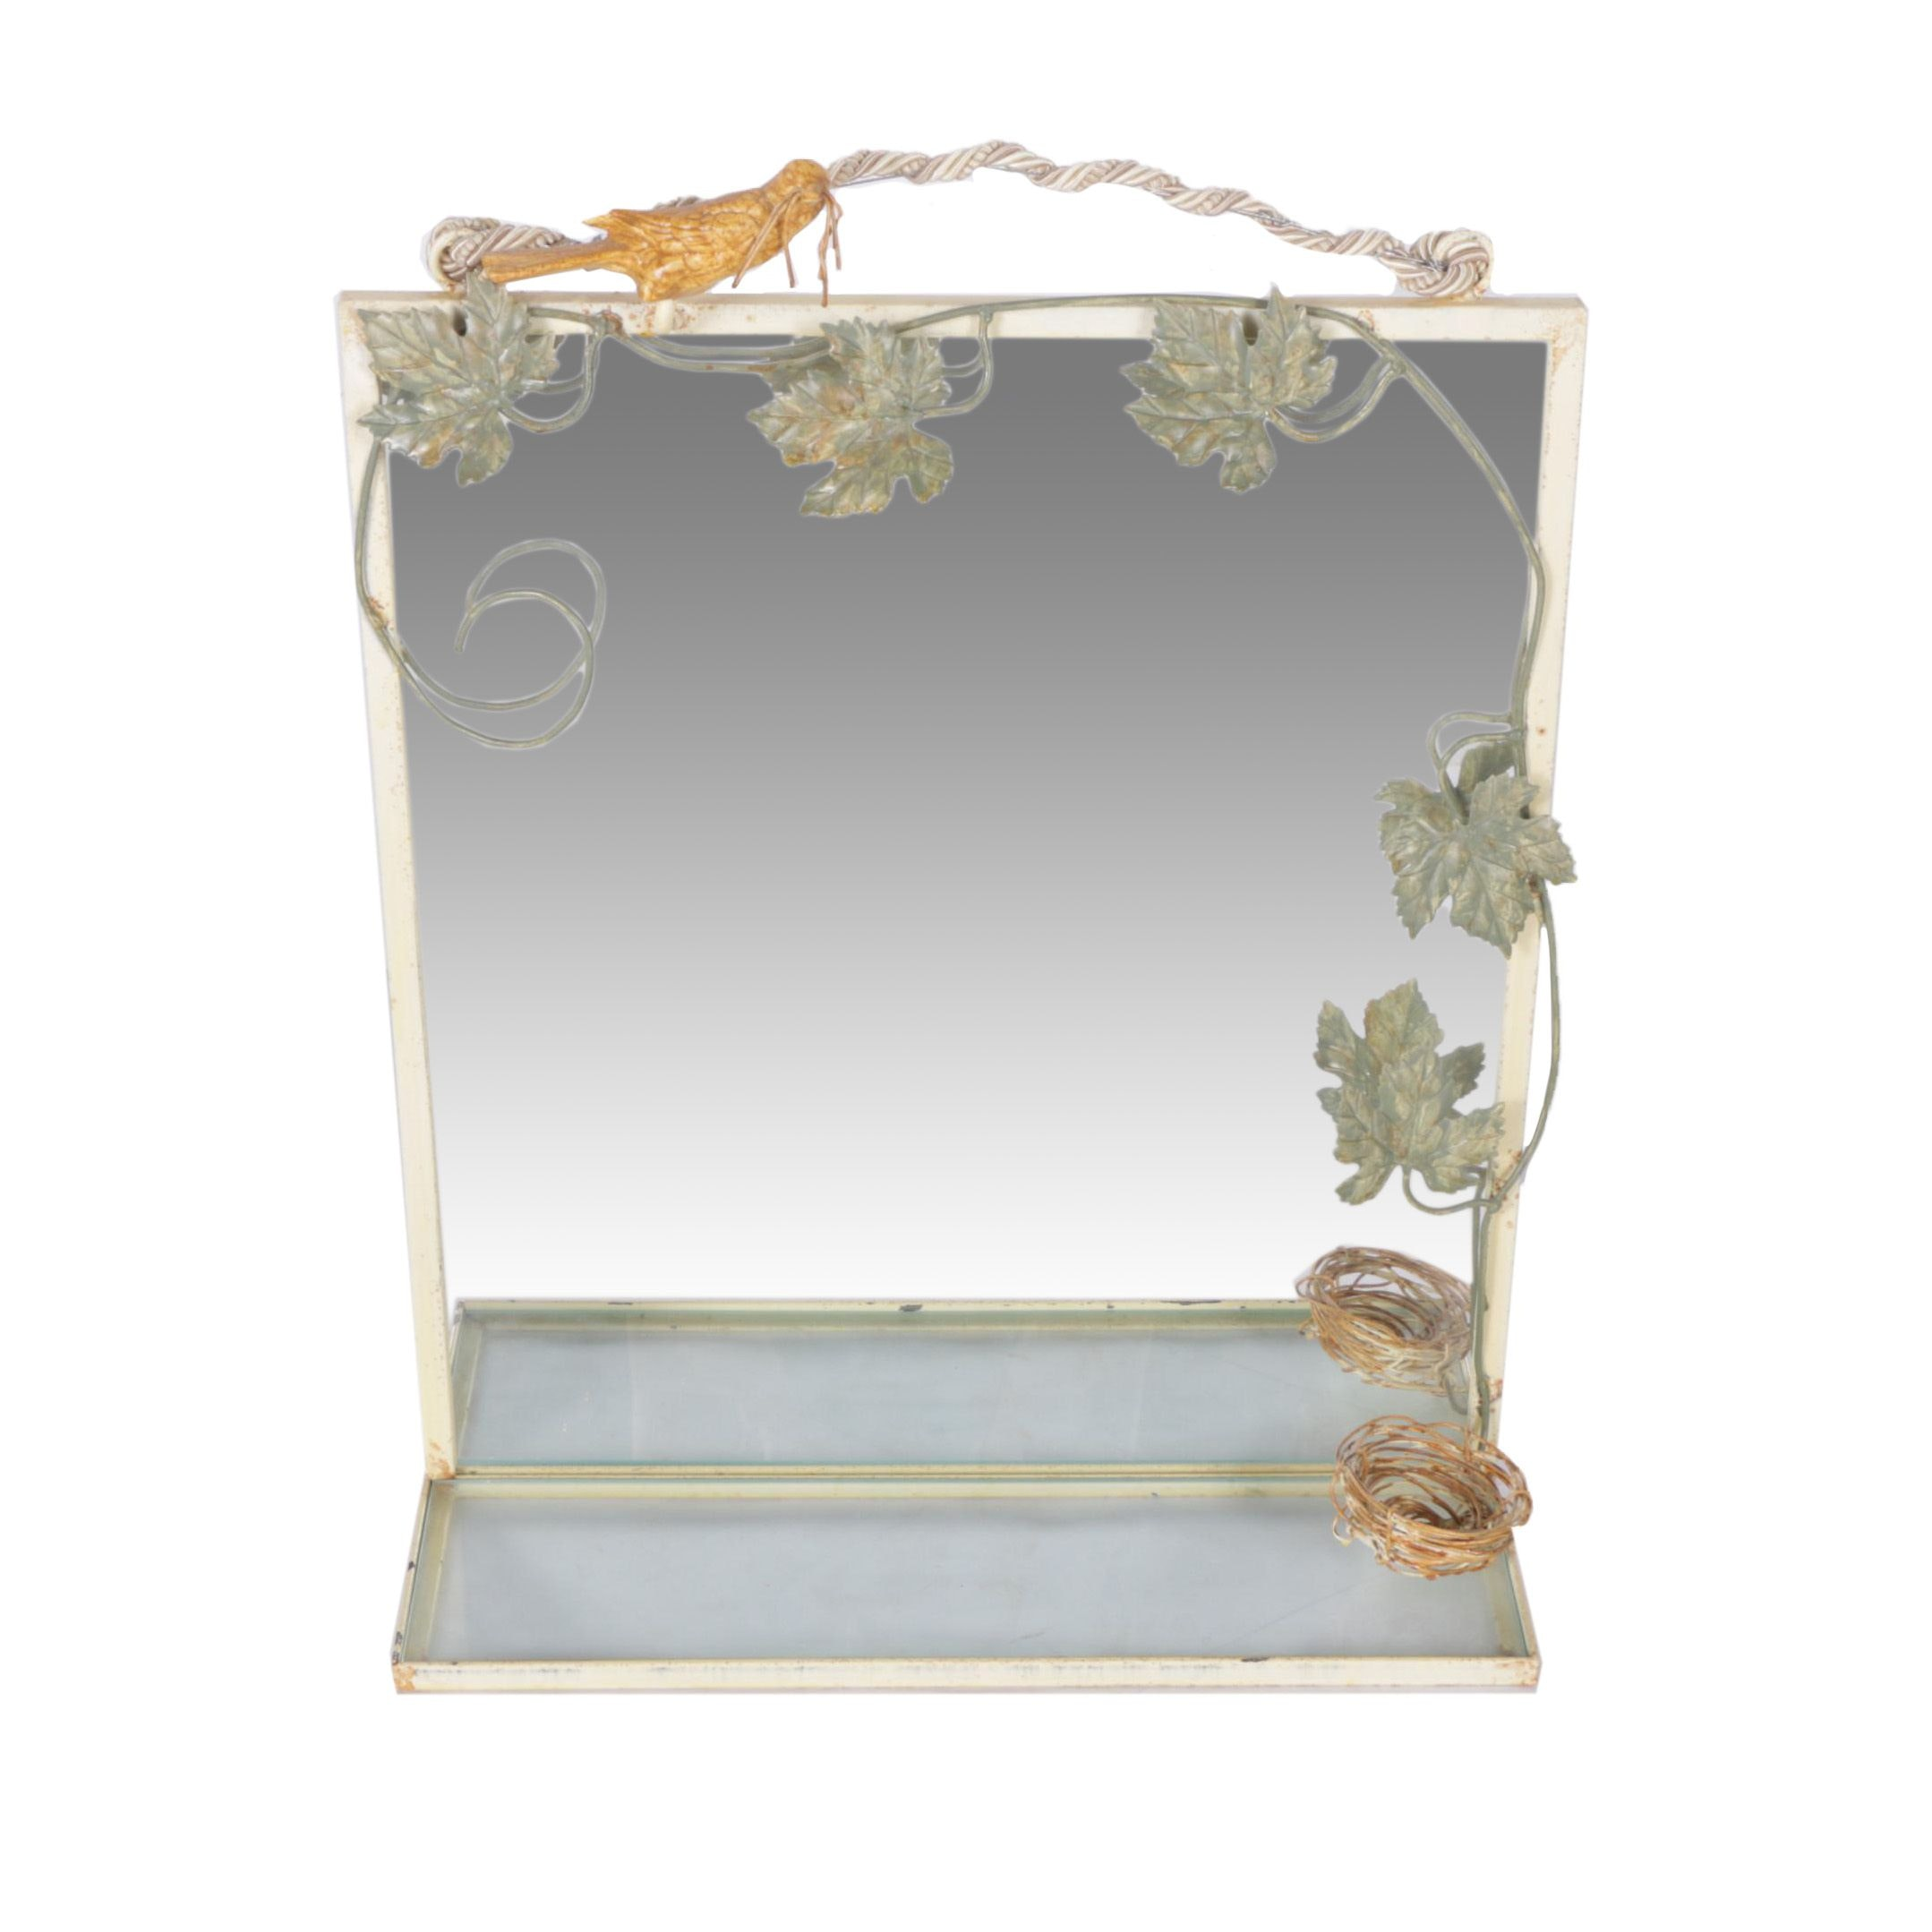 Contemporary Nature Themed Hall Mirror with Shelf